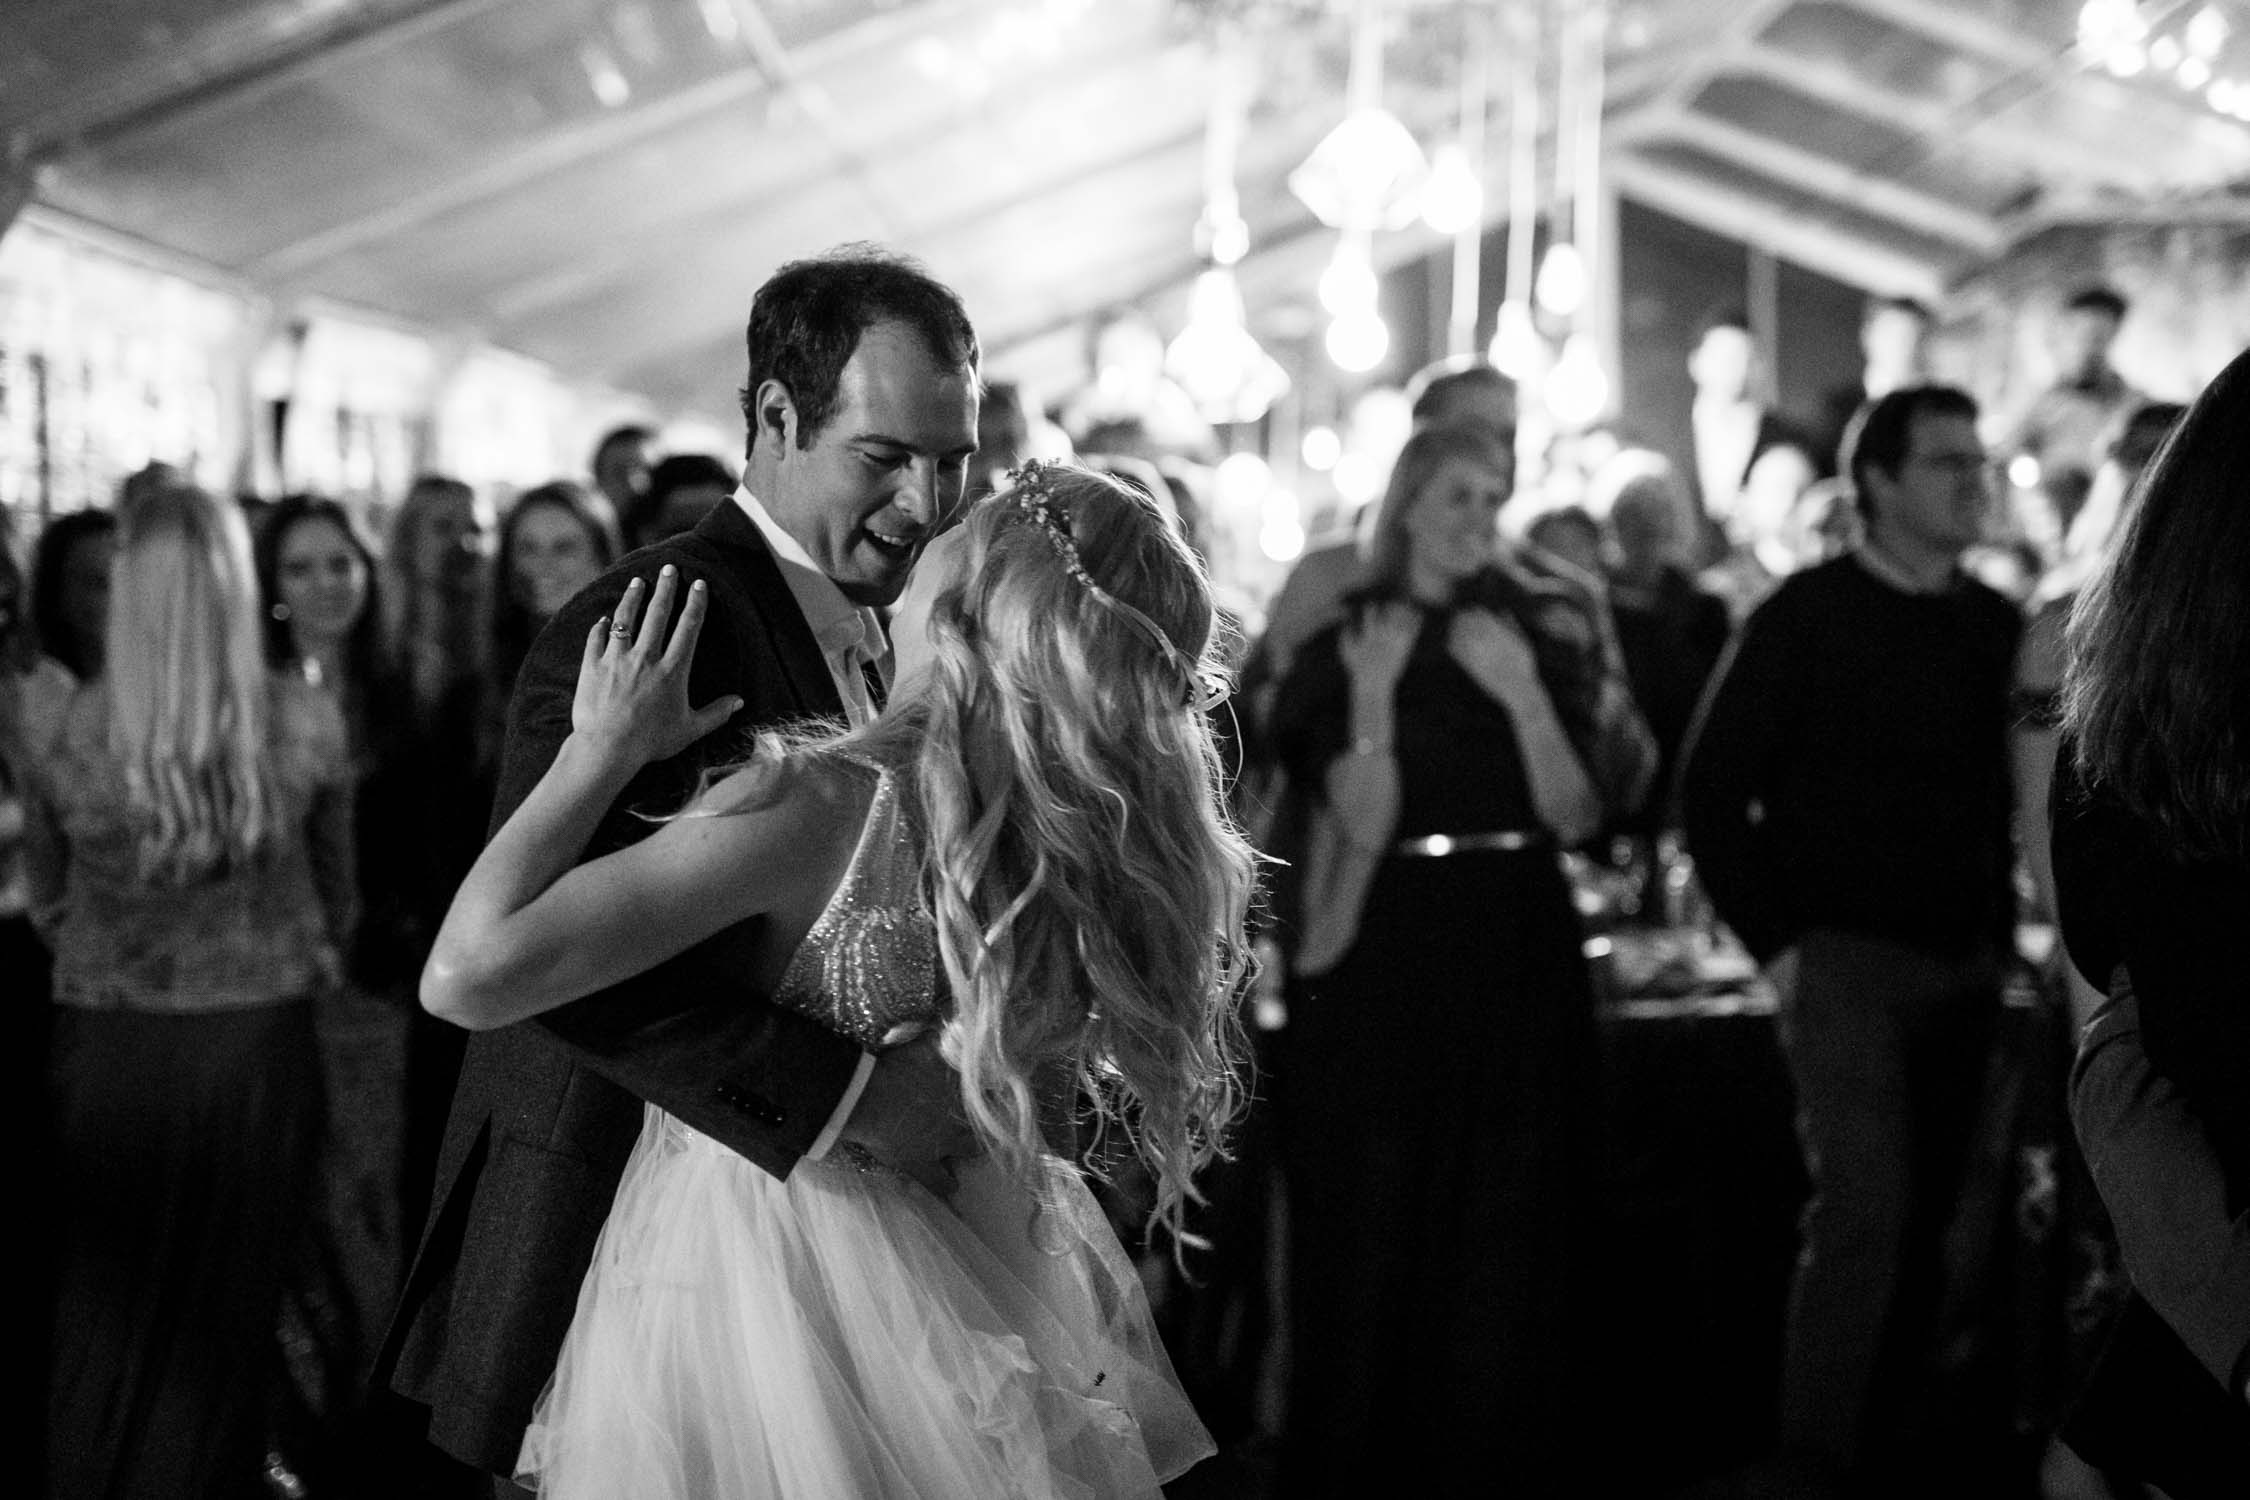 Bride and groom's first dance surrounded by their family and friends. They are having so much fun dancing together.